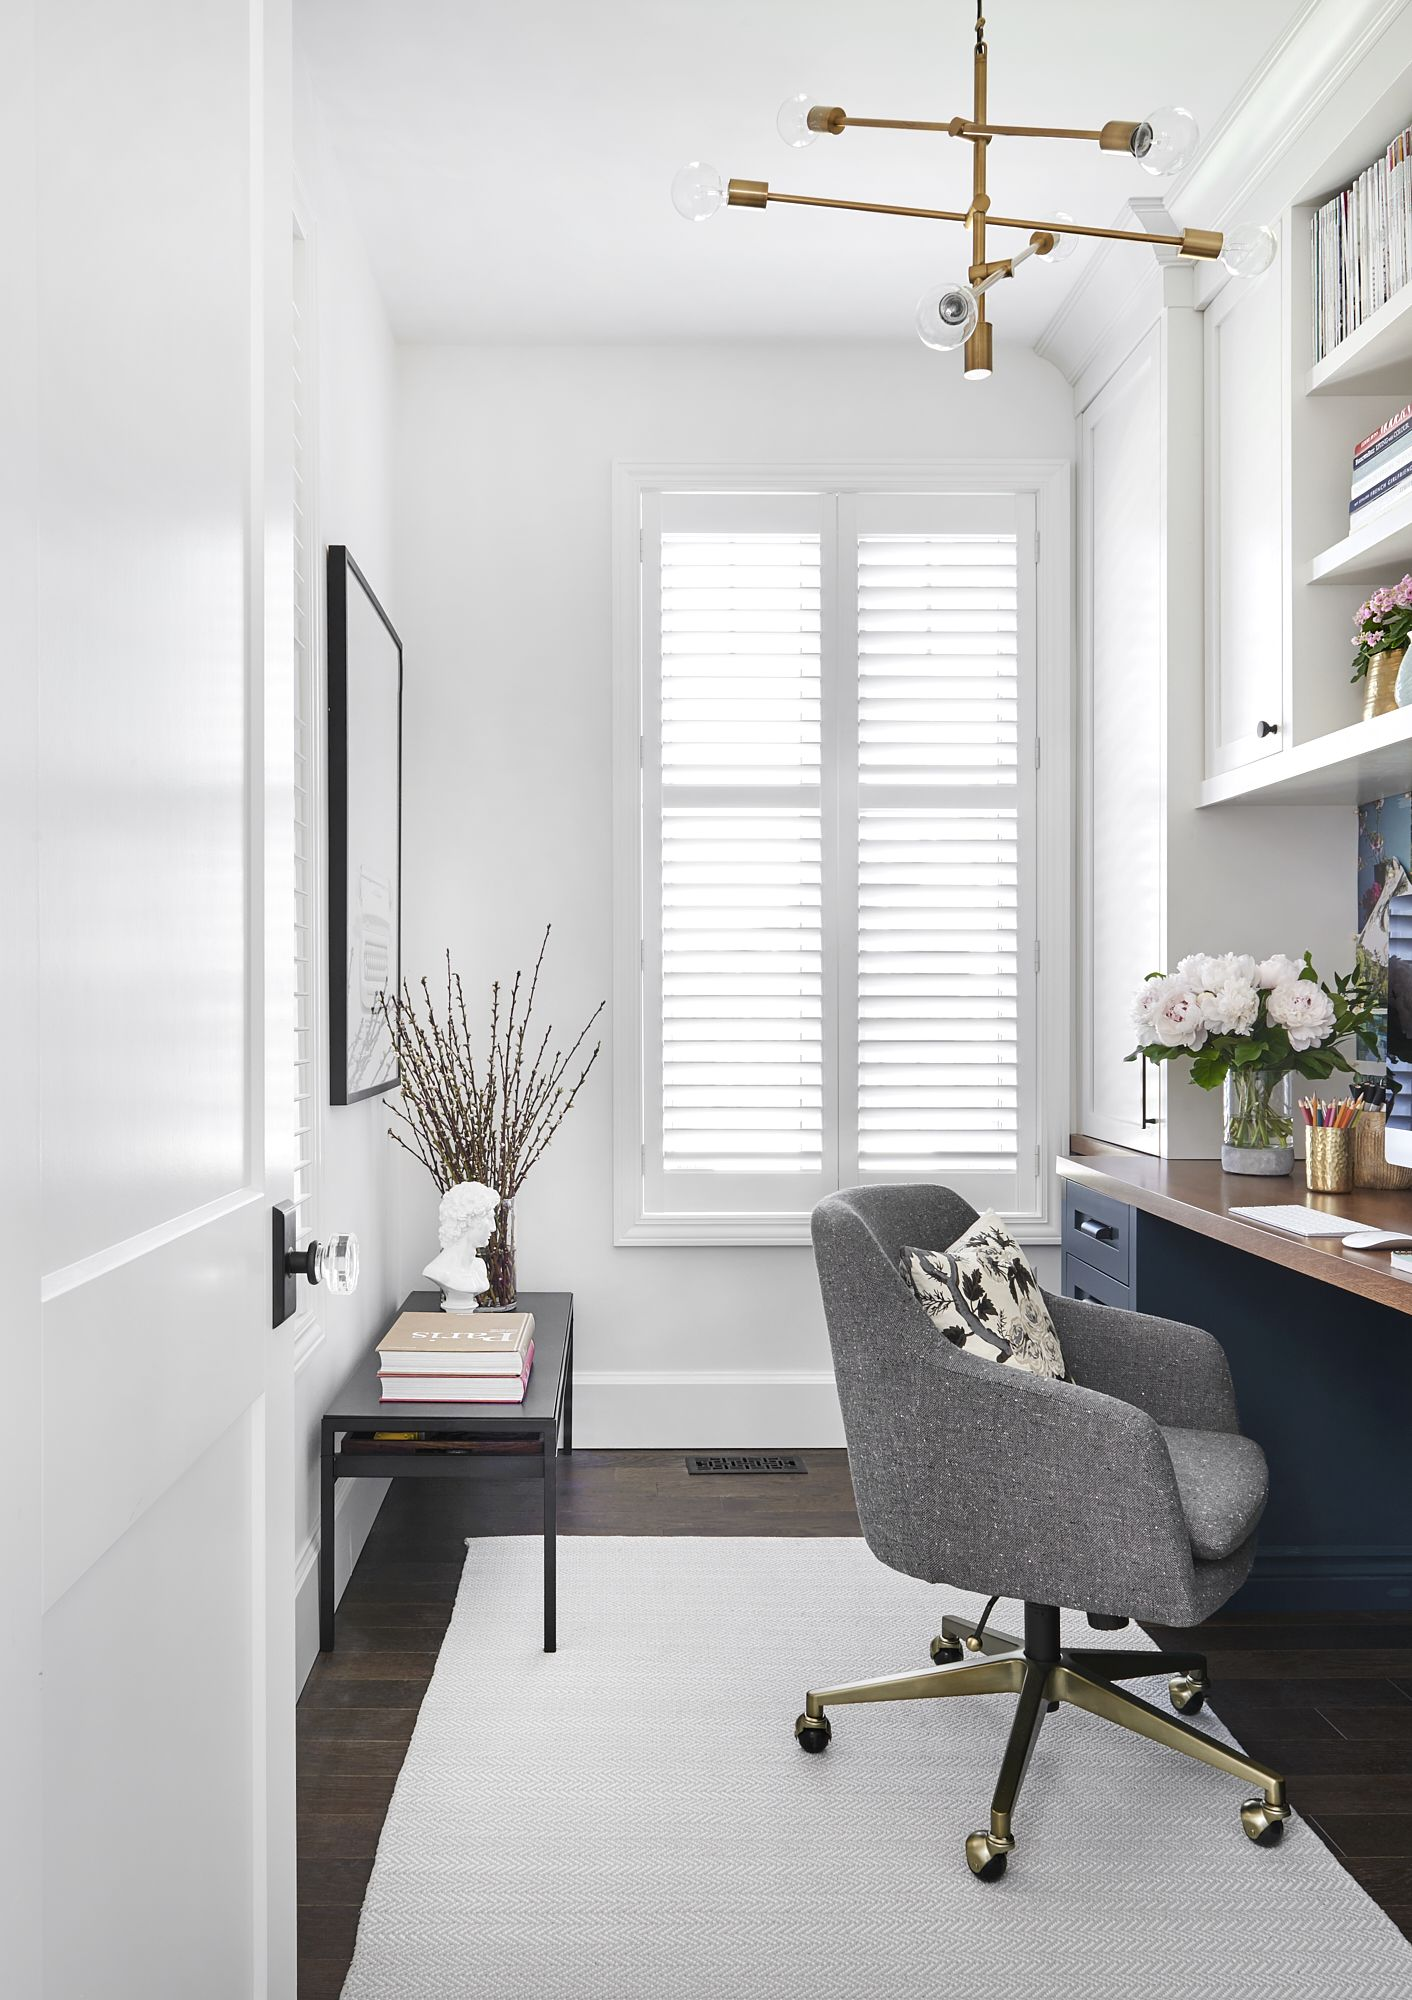 Vanessa francis design beautiful modern bright office in small space decor also discover the rh nl pinterest